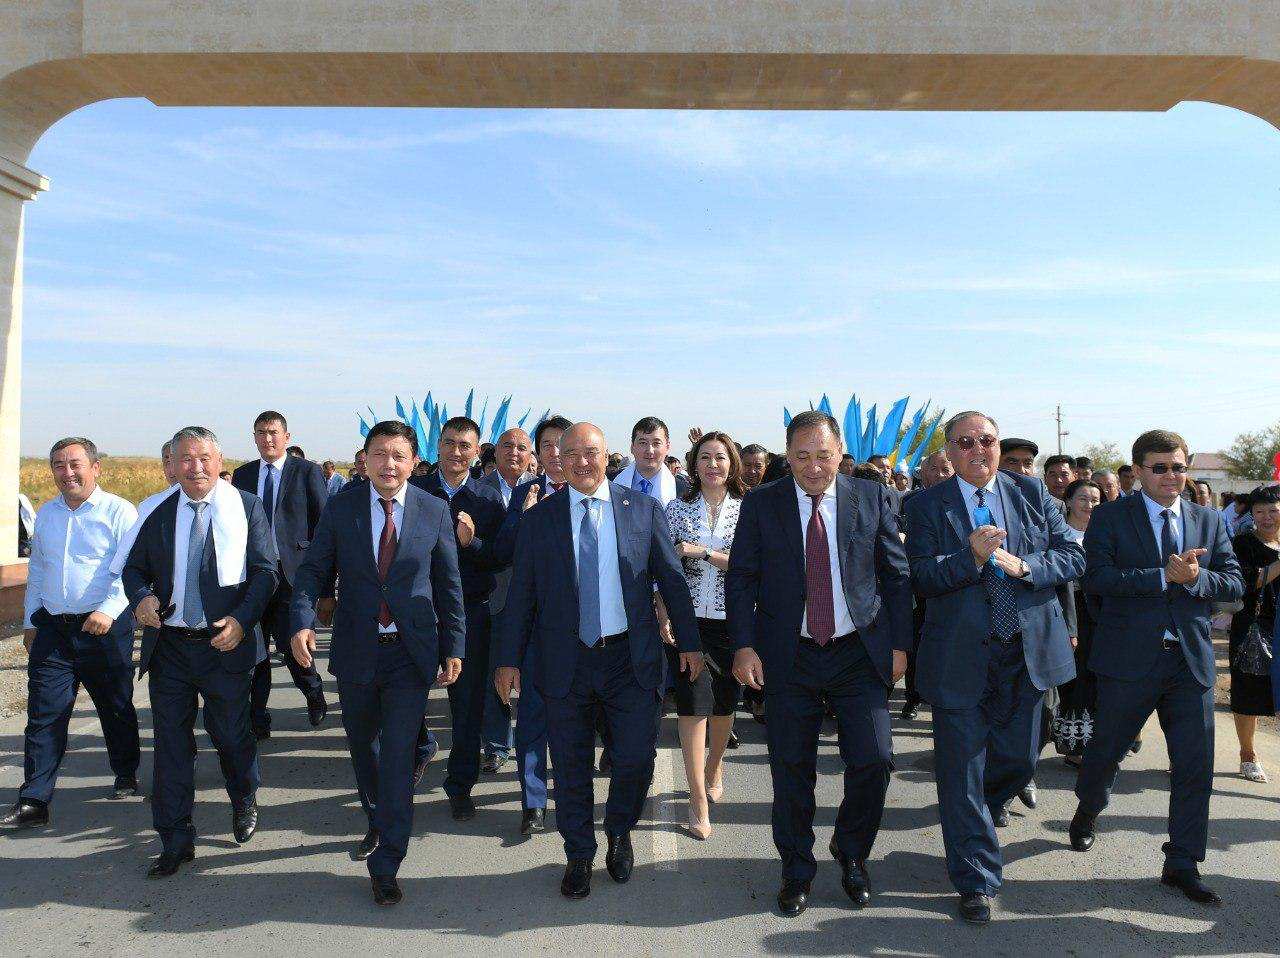 539d57507068f57aa29444495350fc4c - The head of the Federation of trade unions visited the Turkestan region